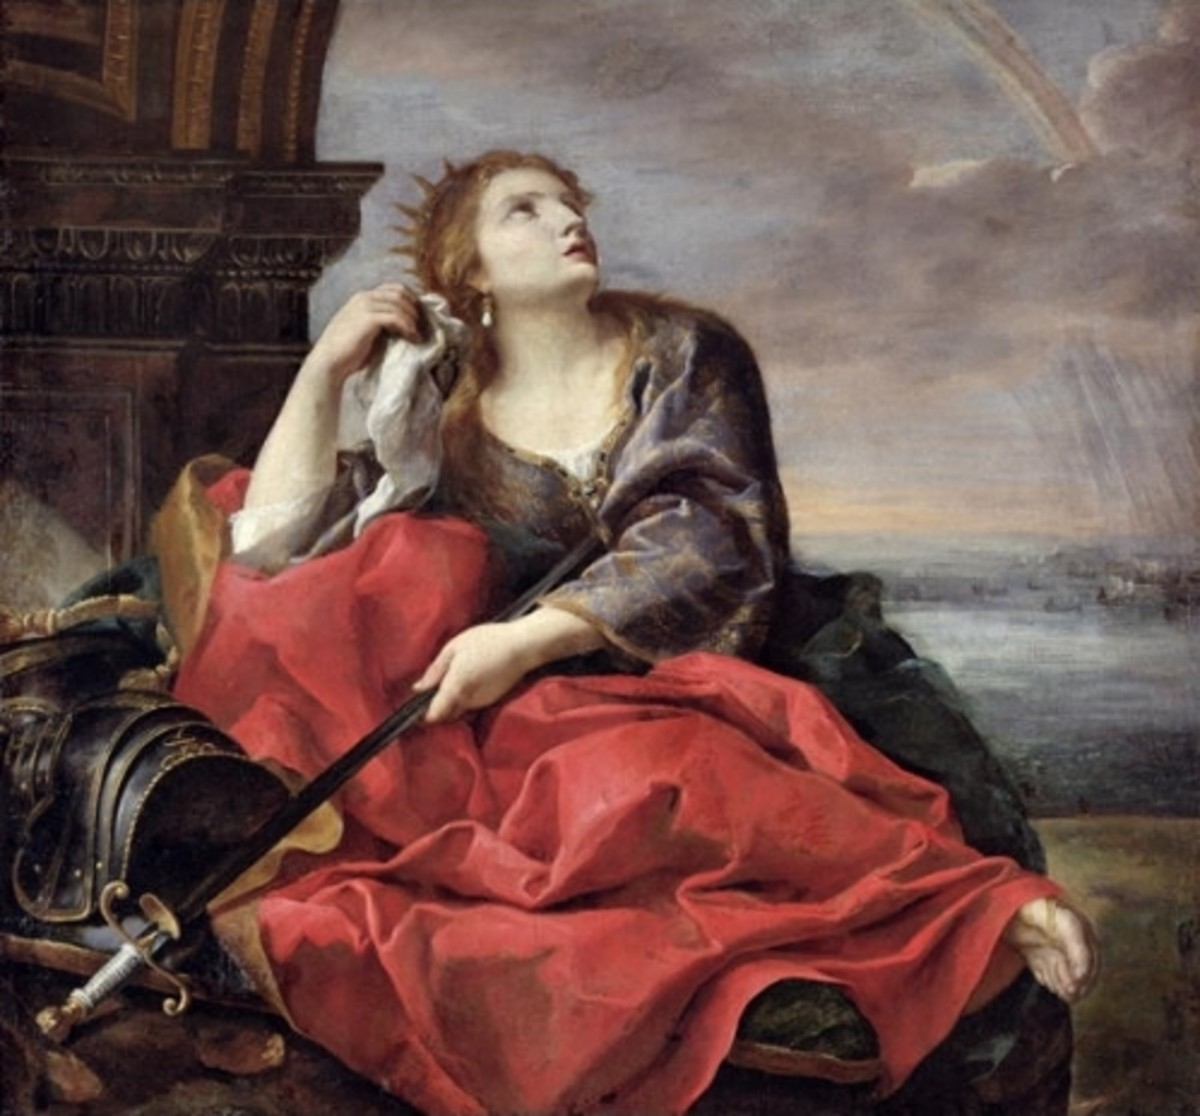 Dido stabs herself on a pyre as Aeneas abandons  her